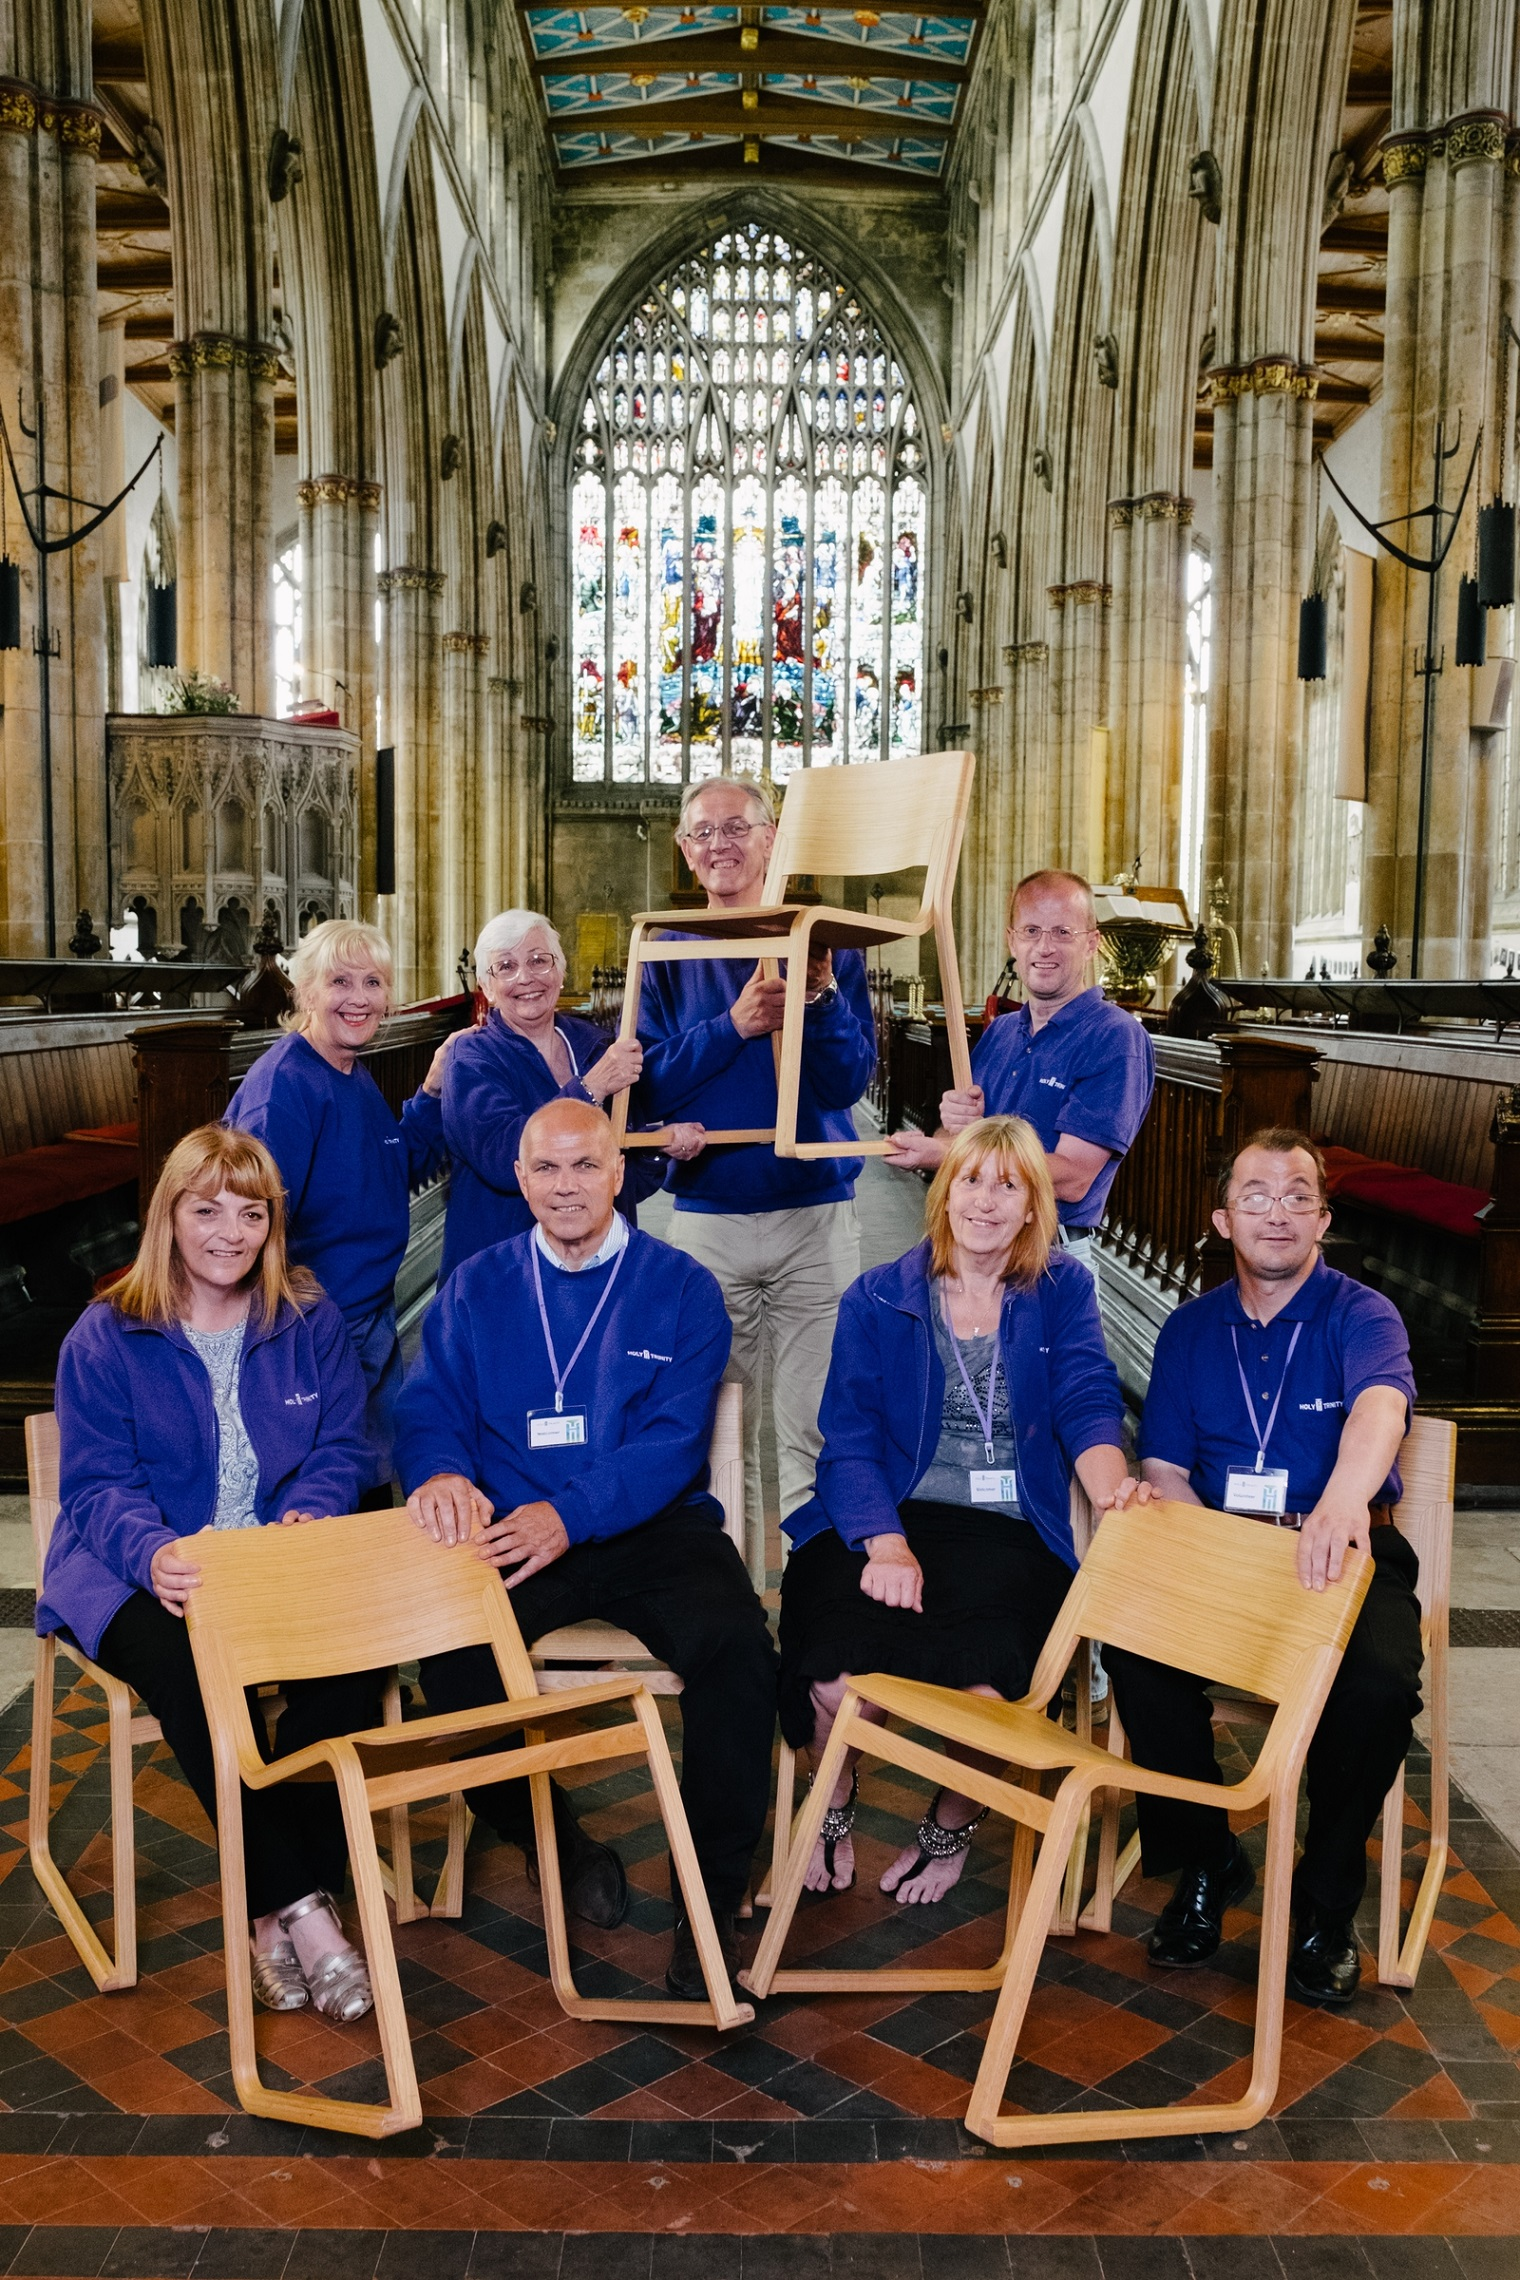 Supporting the appeal for new chairs for historic Holy Trinity Church are volunteers, back, from left, Nancy Brown, Julia Allum, Ray Taylor and David Ideson and front, from left, Linda Saddington, John Lawson, Janet Goforth and Chris McInnes.